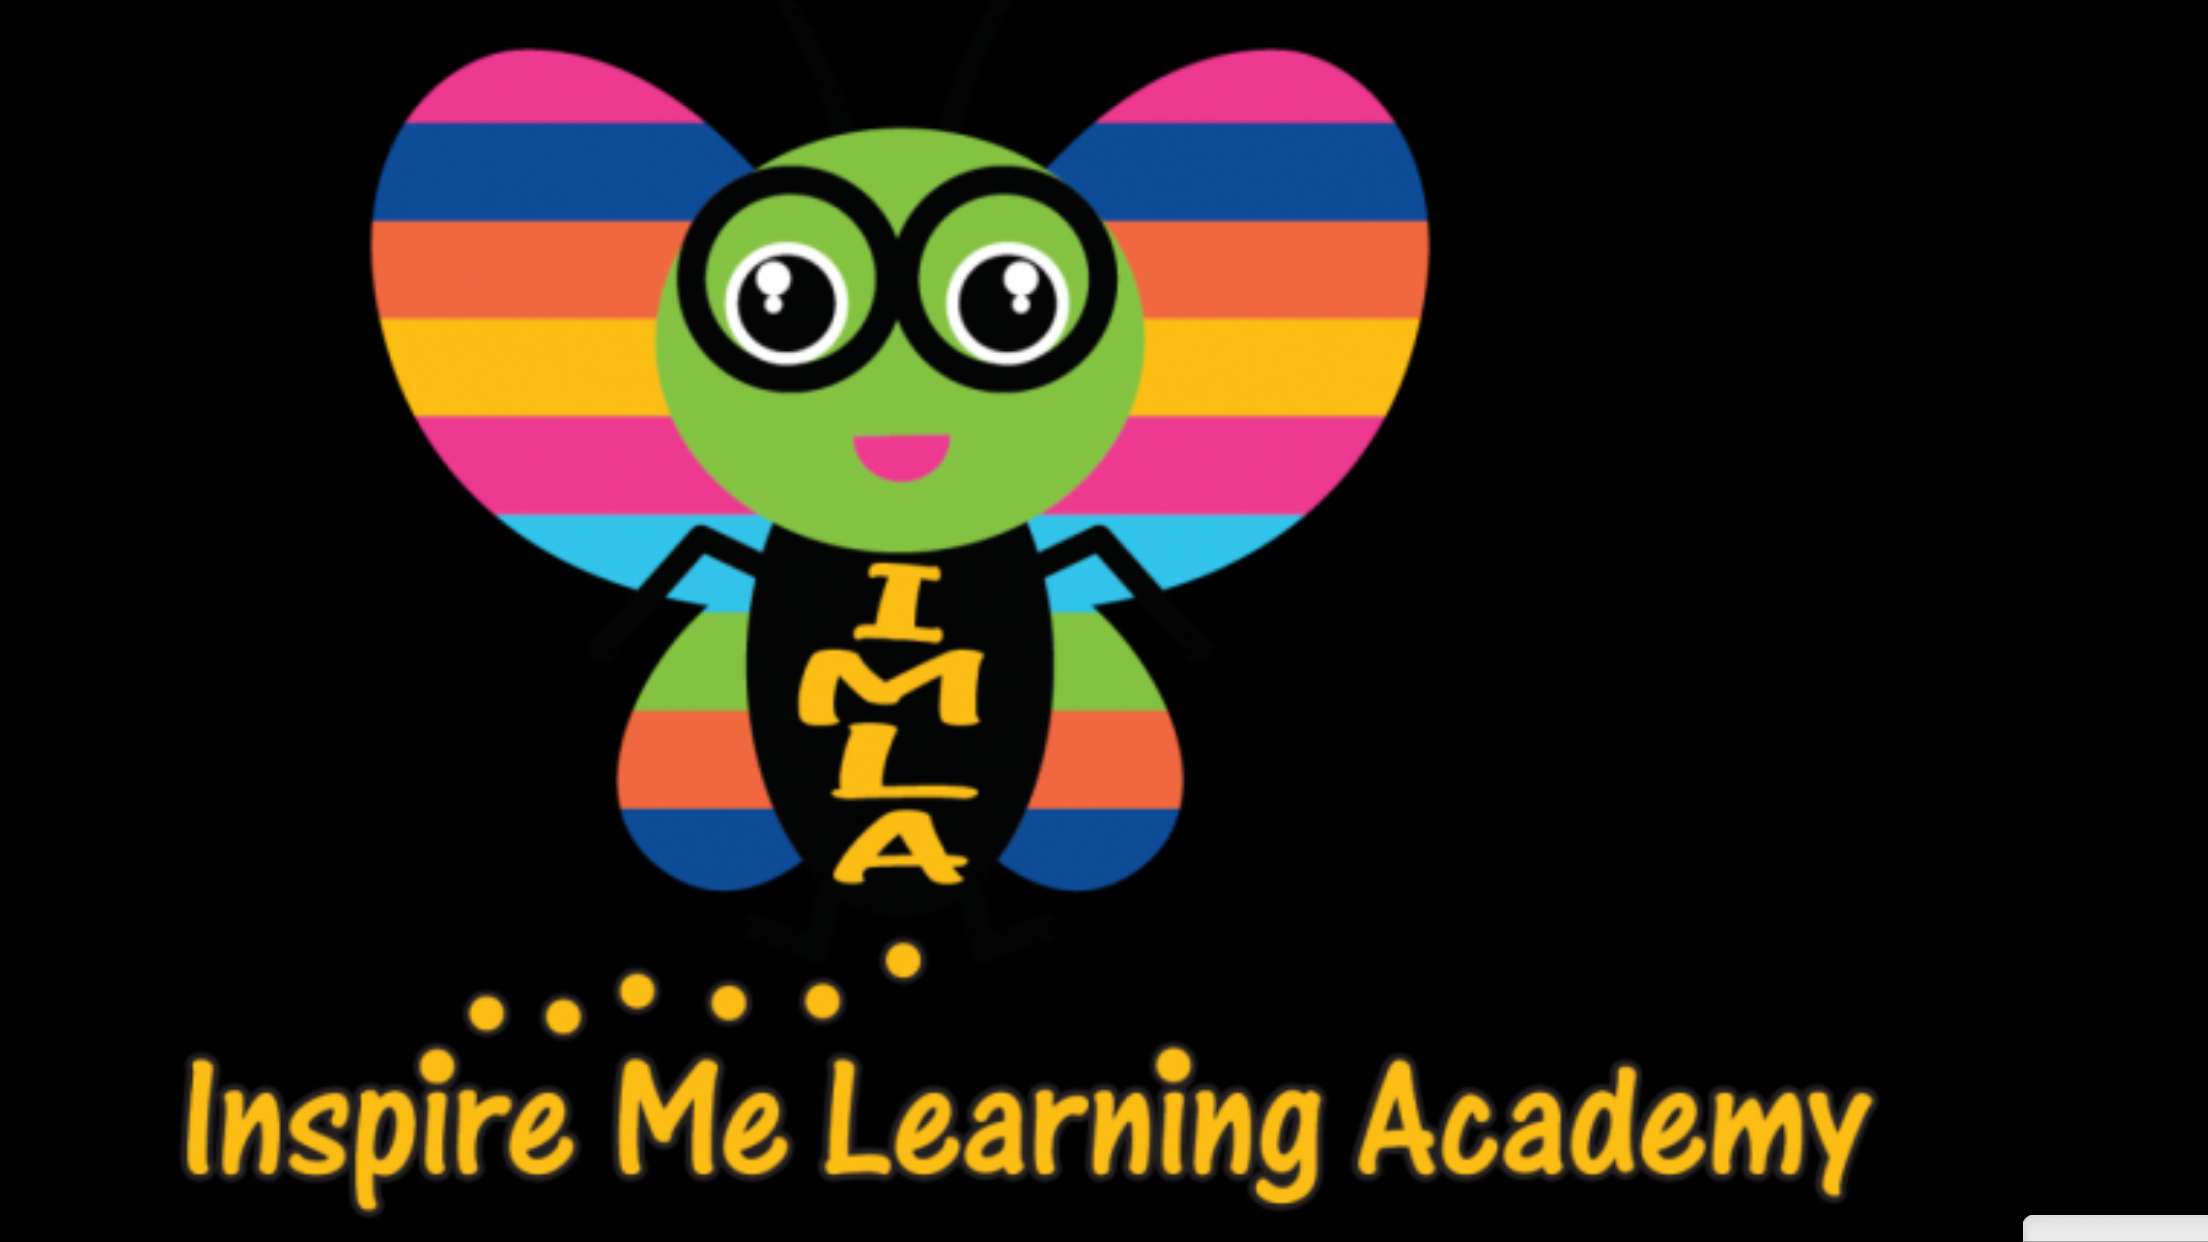 Inspire Me Learning Academy